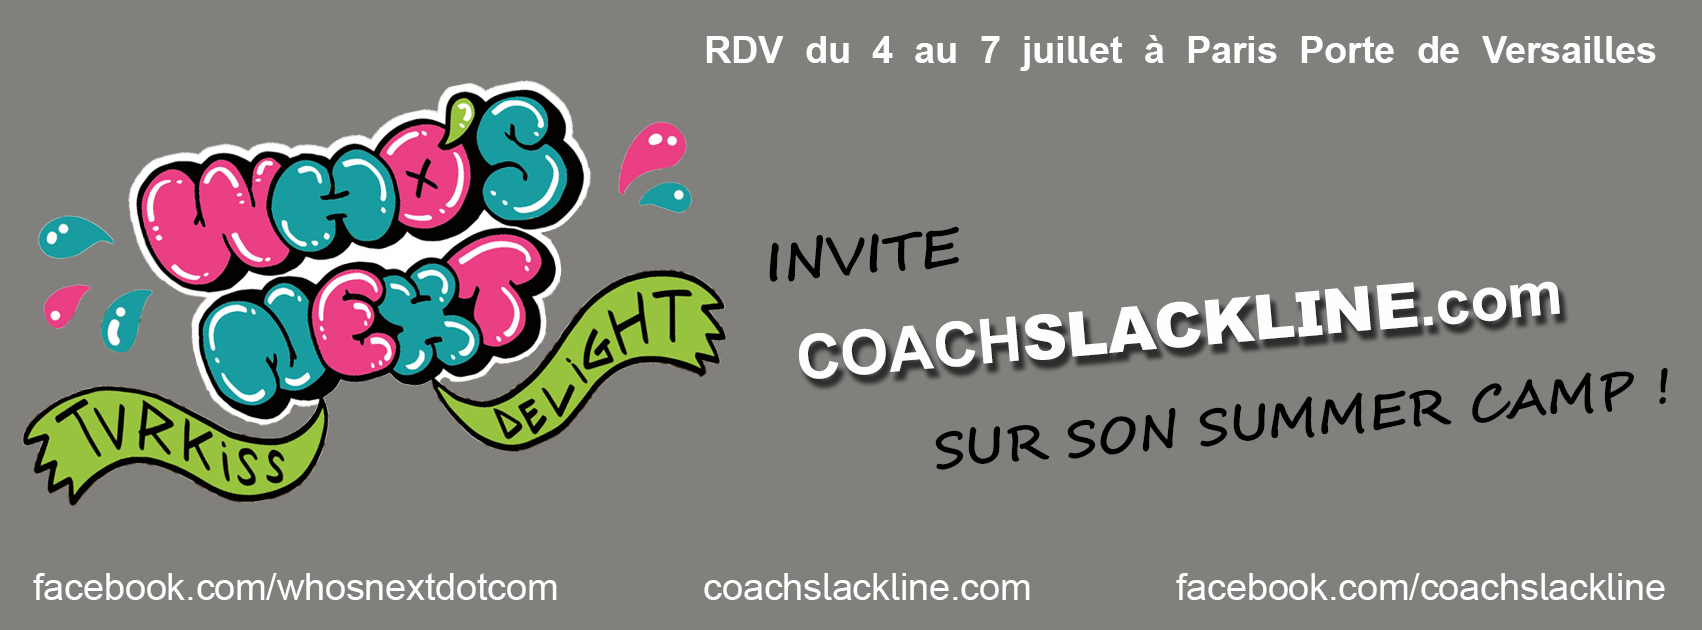 Coachslackline au salon who s next ce we romain billard for Porte de versailles salon who s next